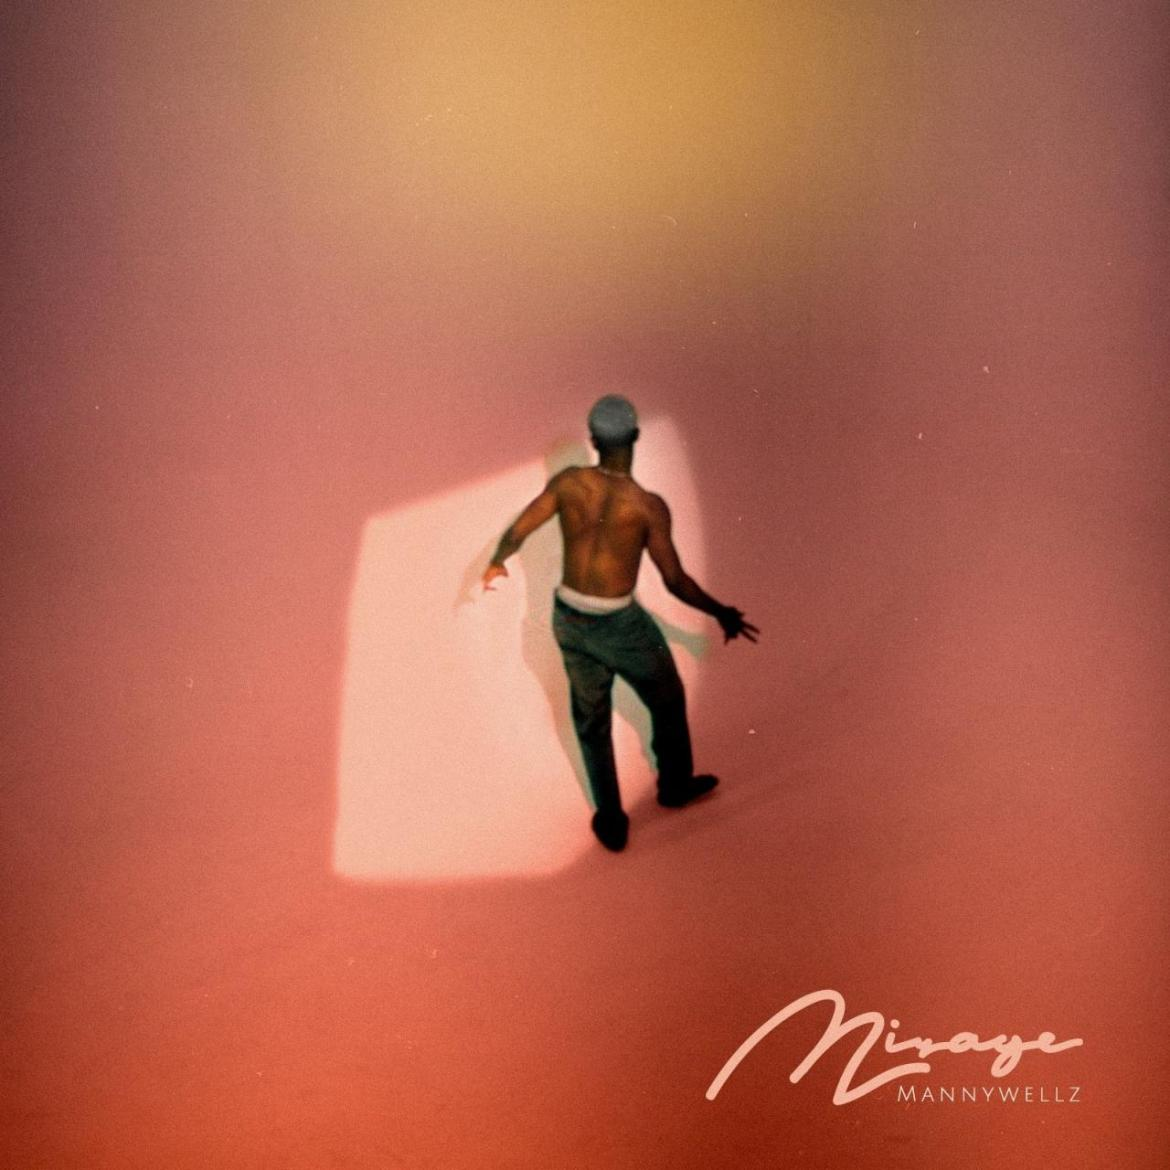 Mannywellz Ft. Tems - Peace | Mp3 Download